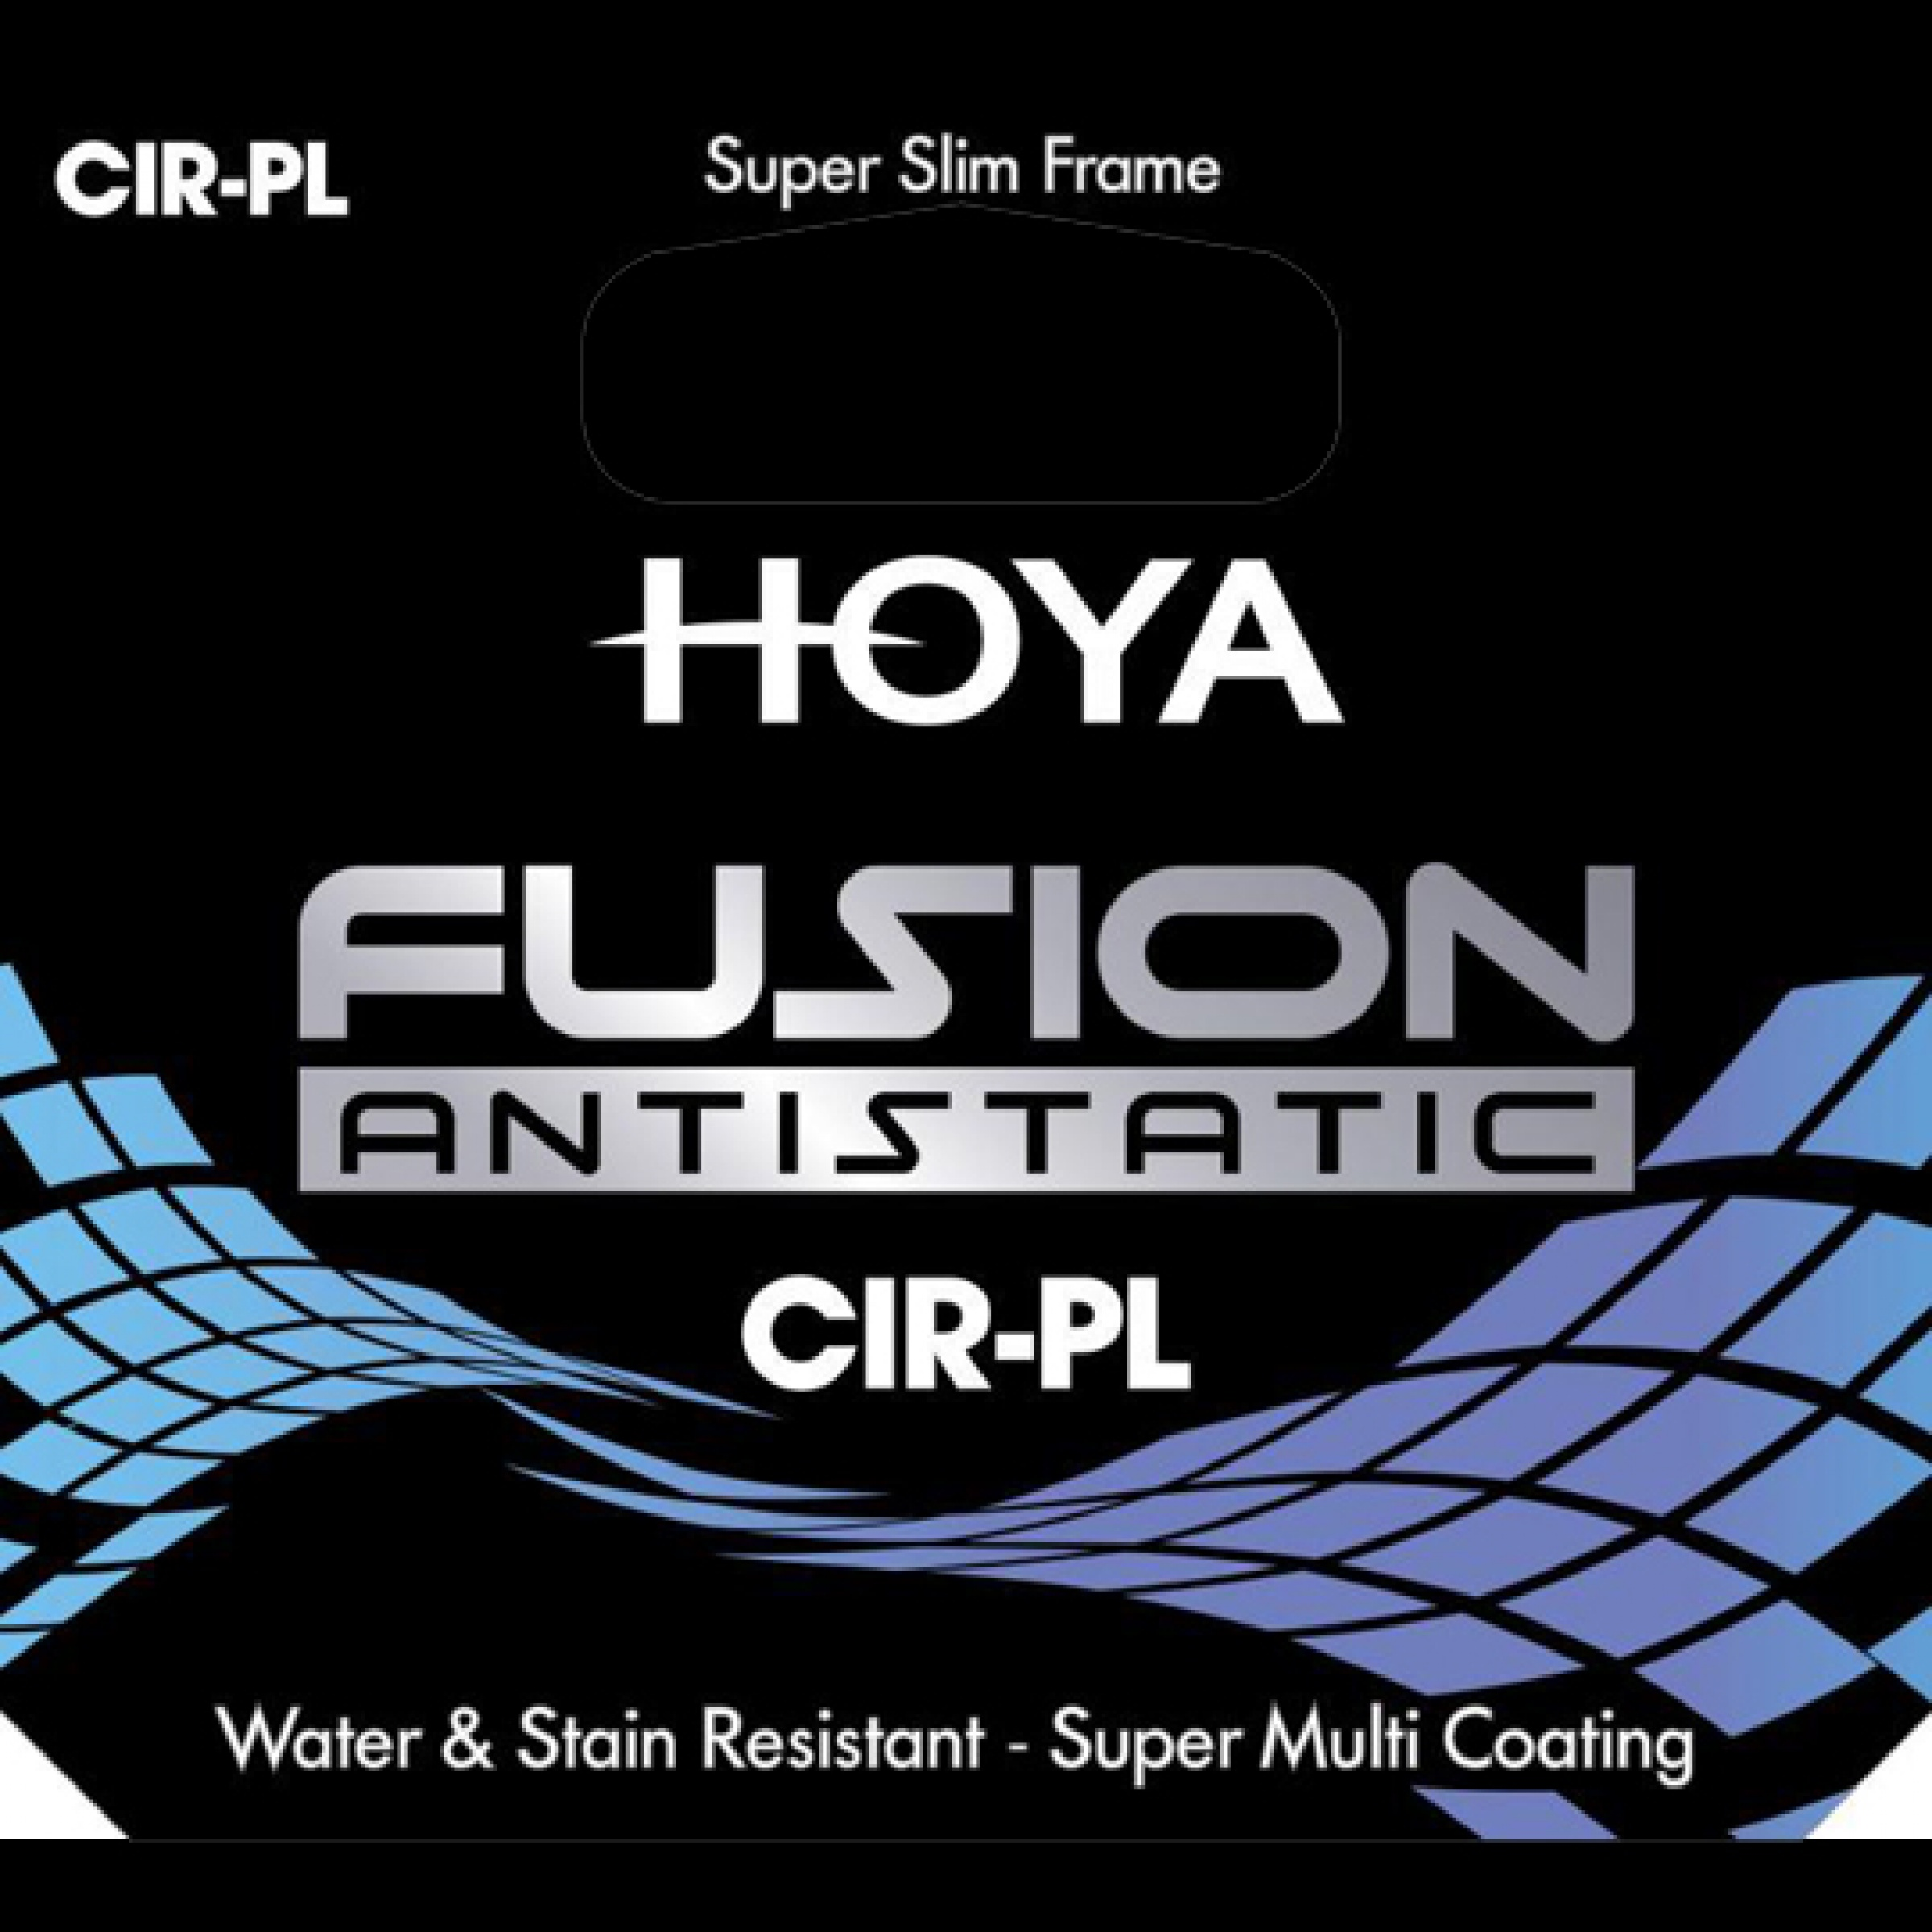 Hoya-46mm-CircPol-Fusion-Antistatic